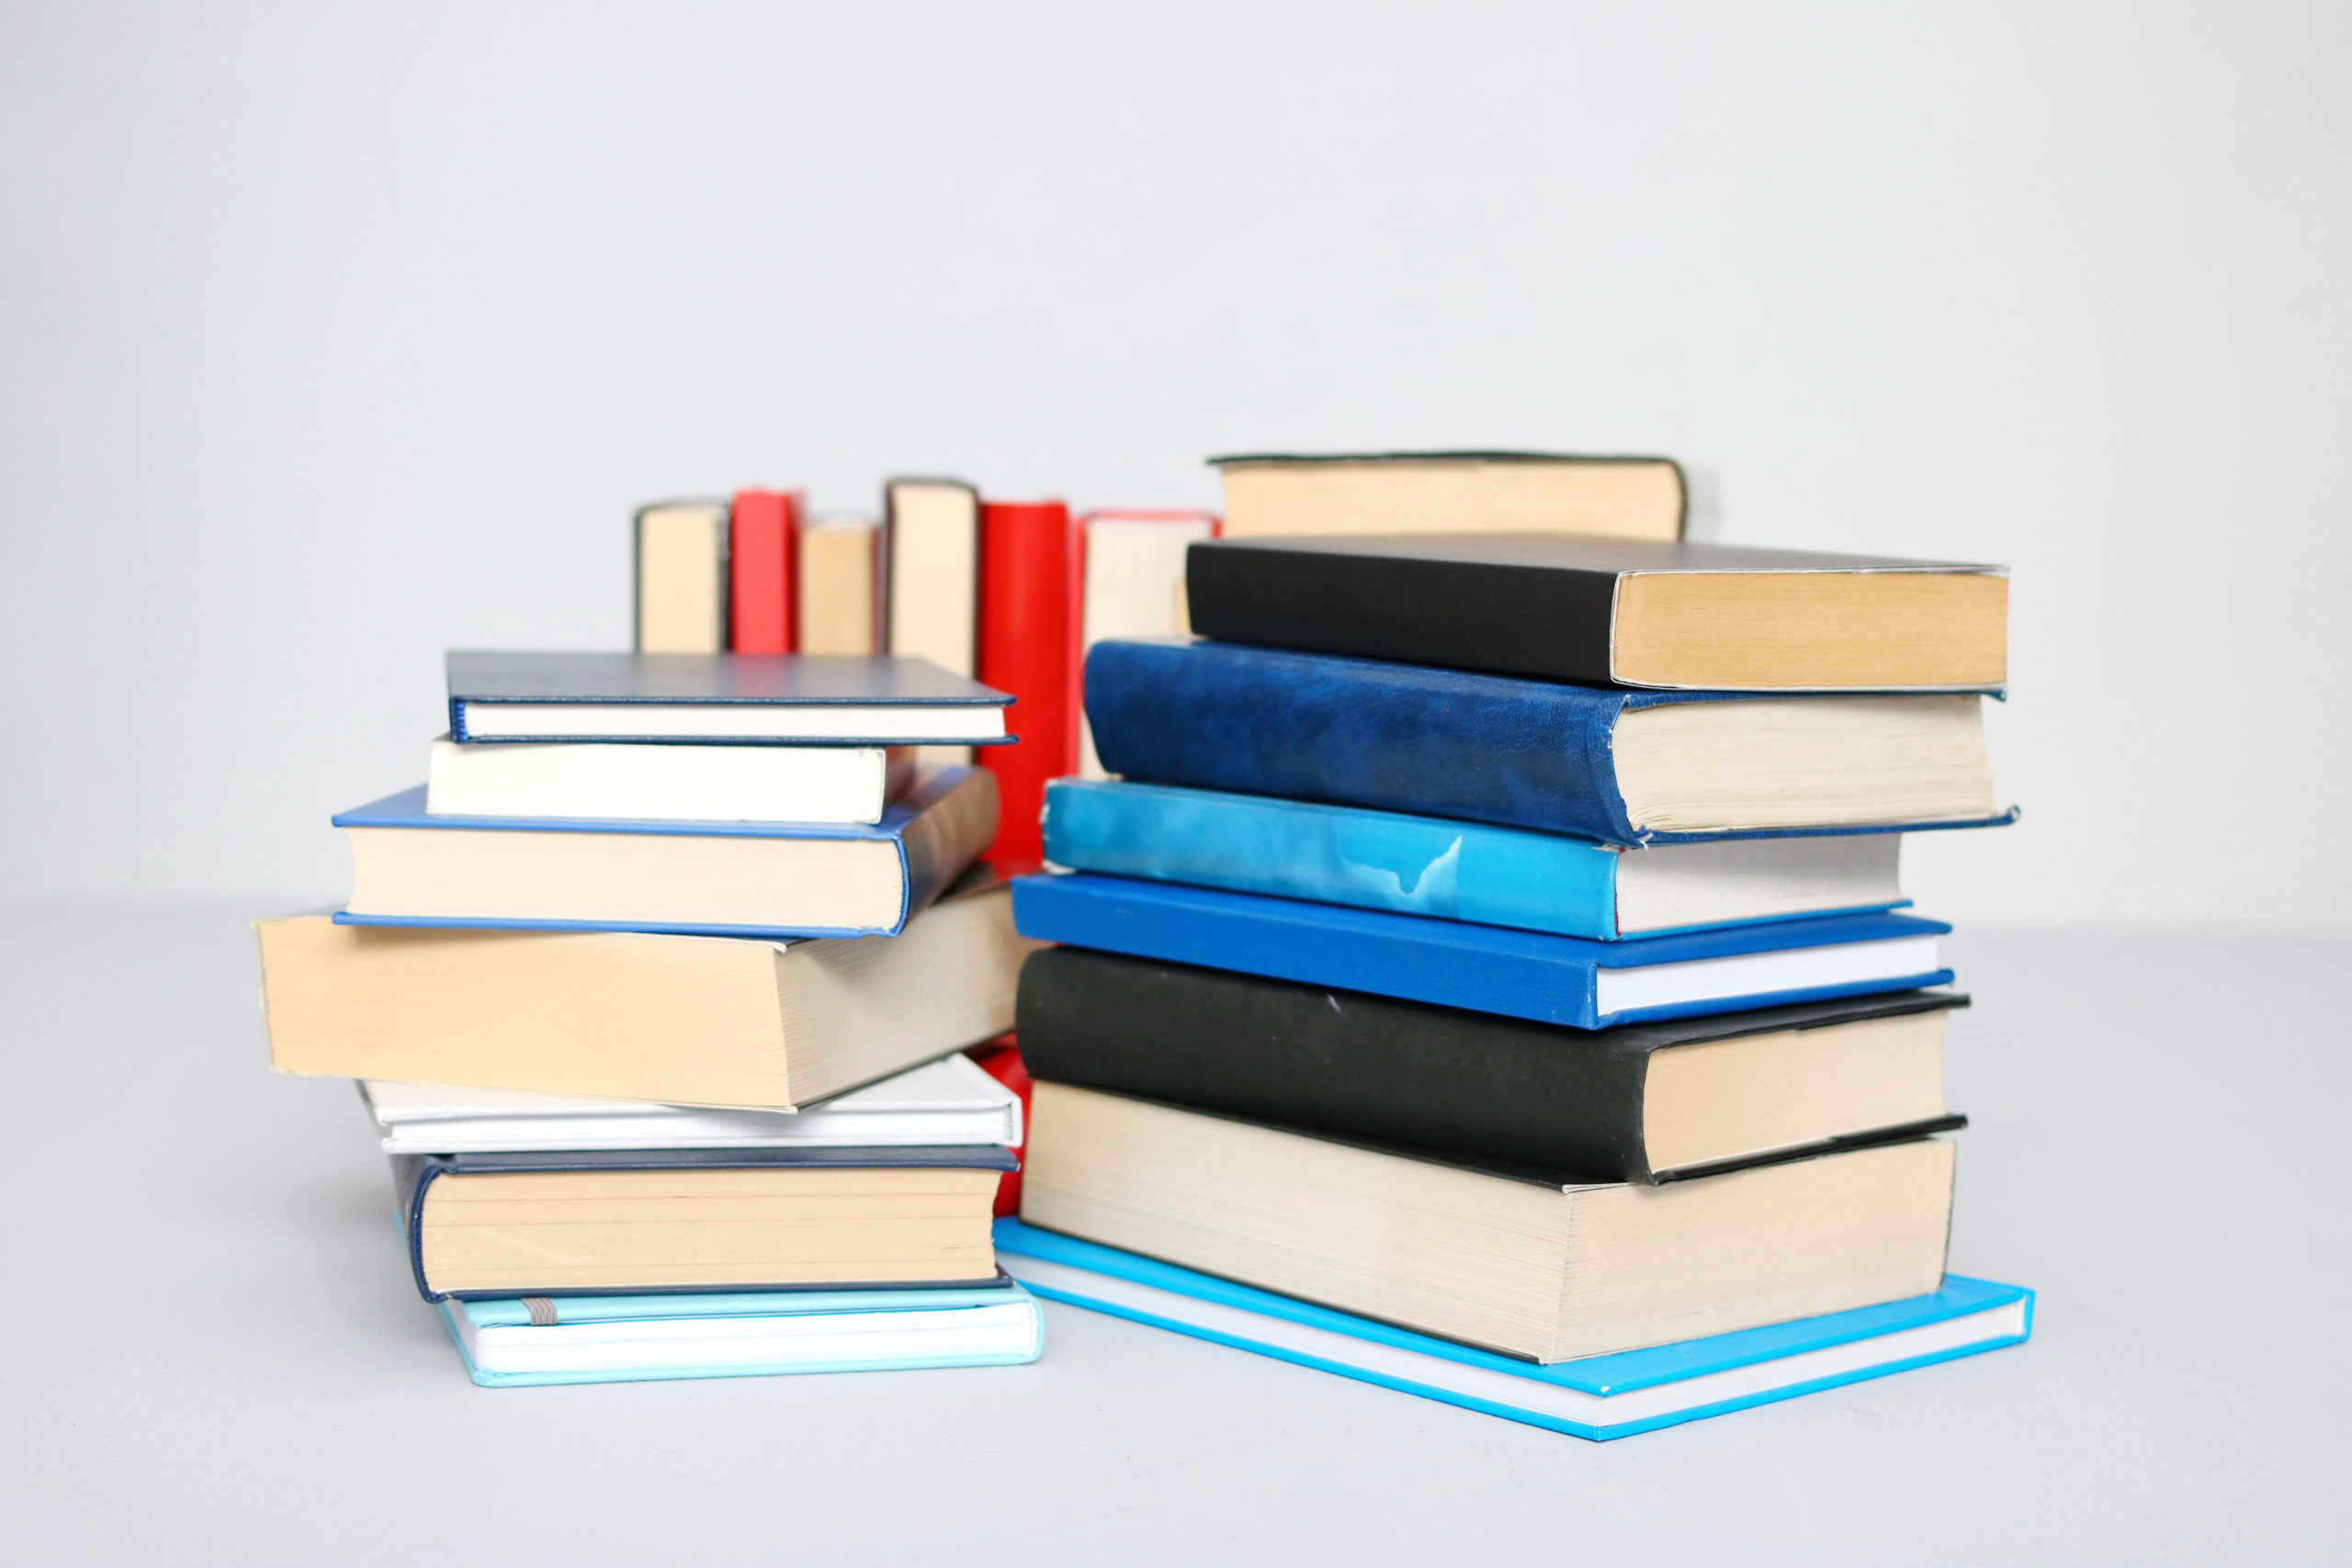 The 5 Best Places To Stock Up On Textbooks in 2021